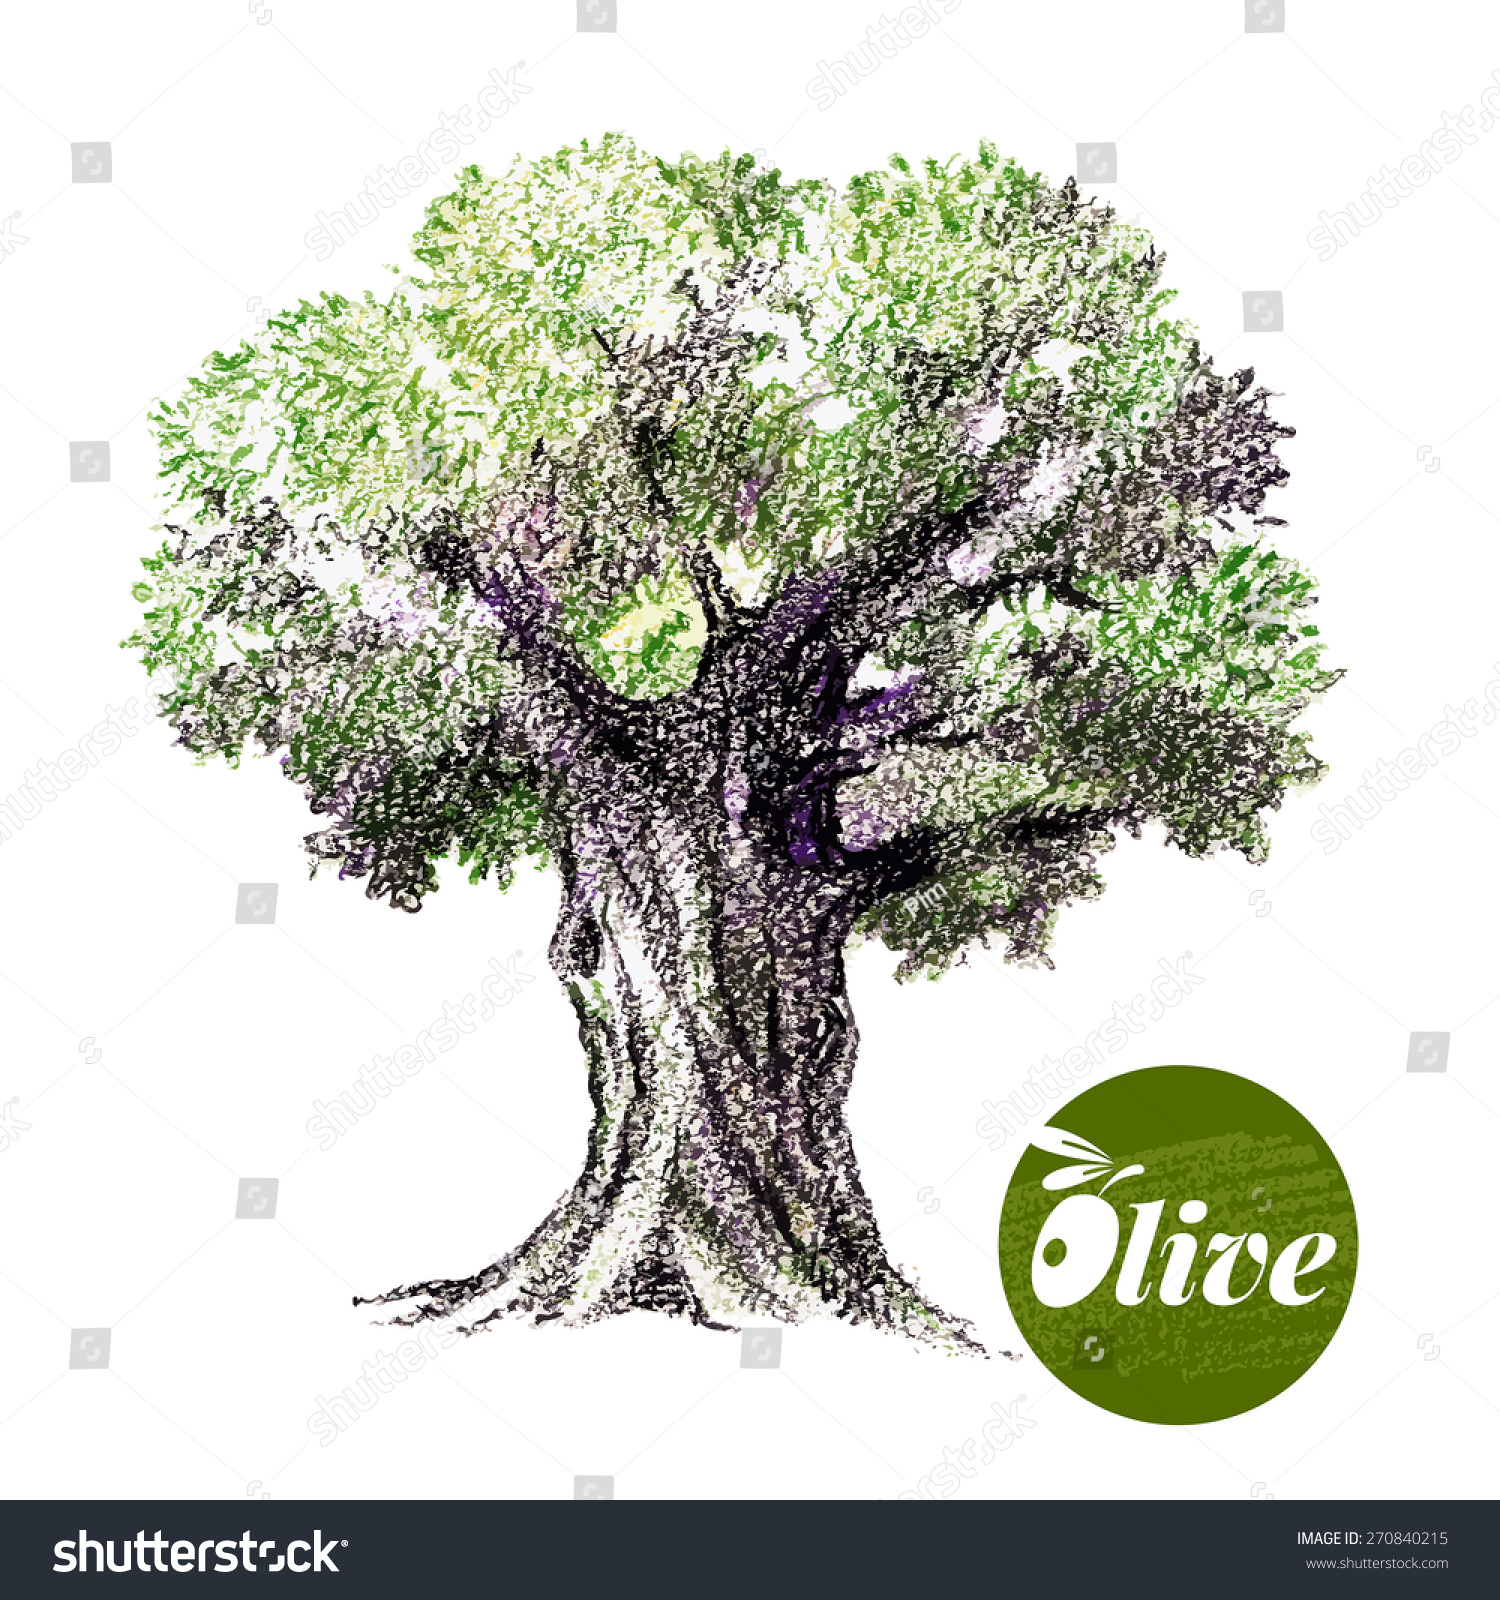 Olive Tree Vector Illustration Hand Drawn Stock Vector (Royalty Free ...